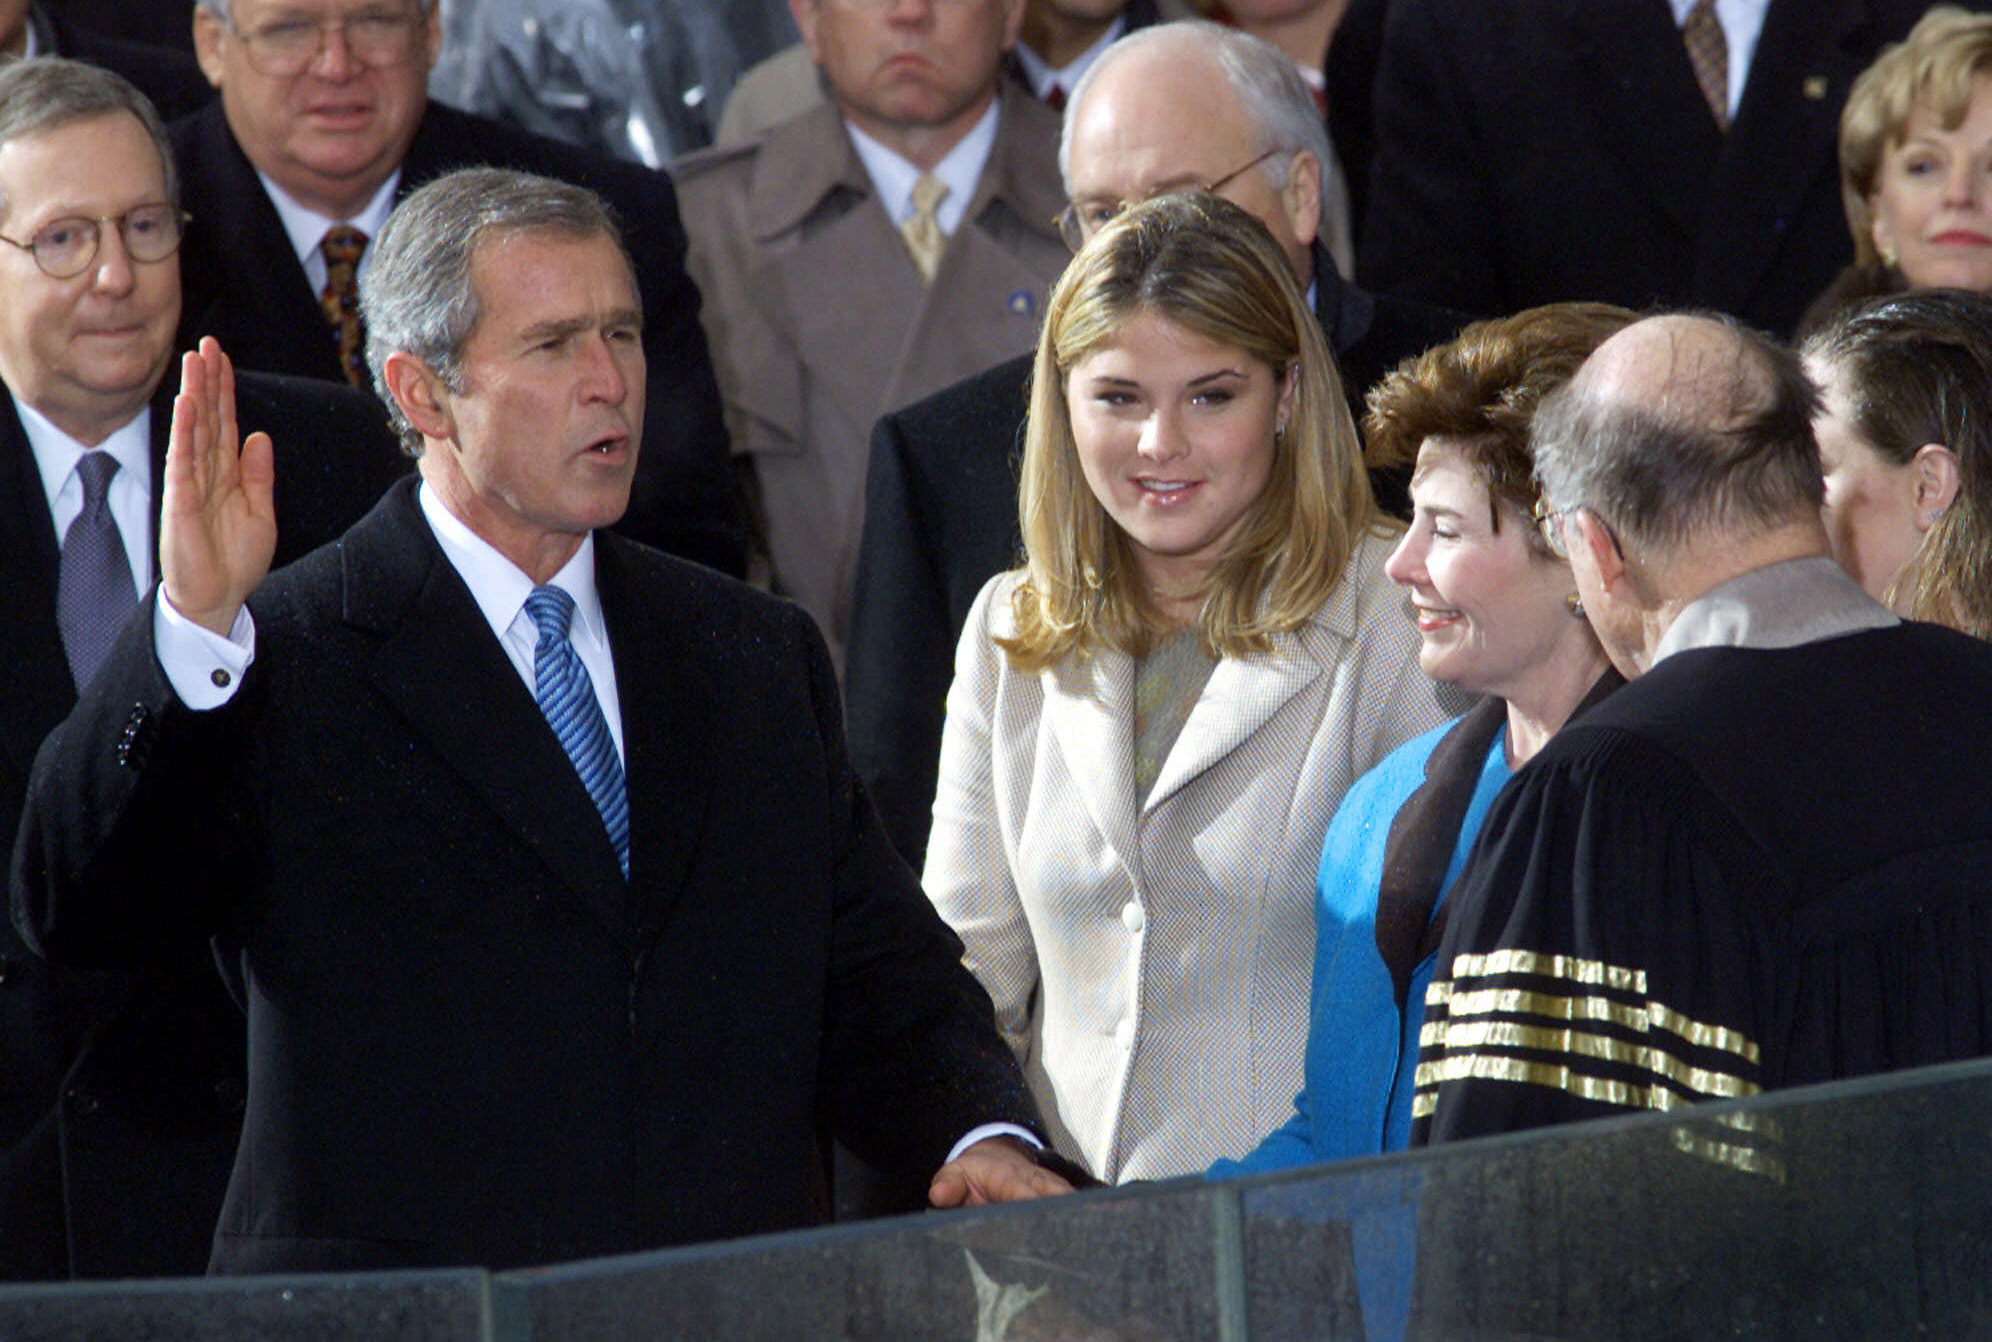 George W. Bush takes the oath of office from Chief Justice William Rehnquist to become the 43rd president Saturday, Jan. 20, 2001, in Washington.